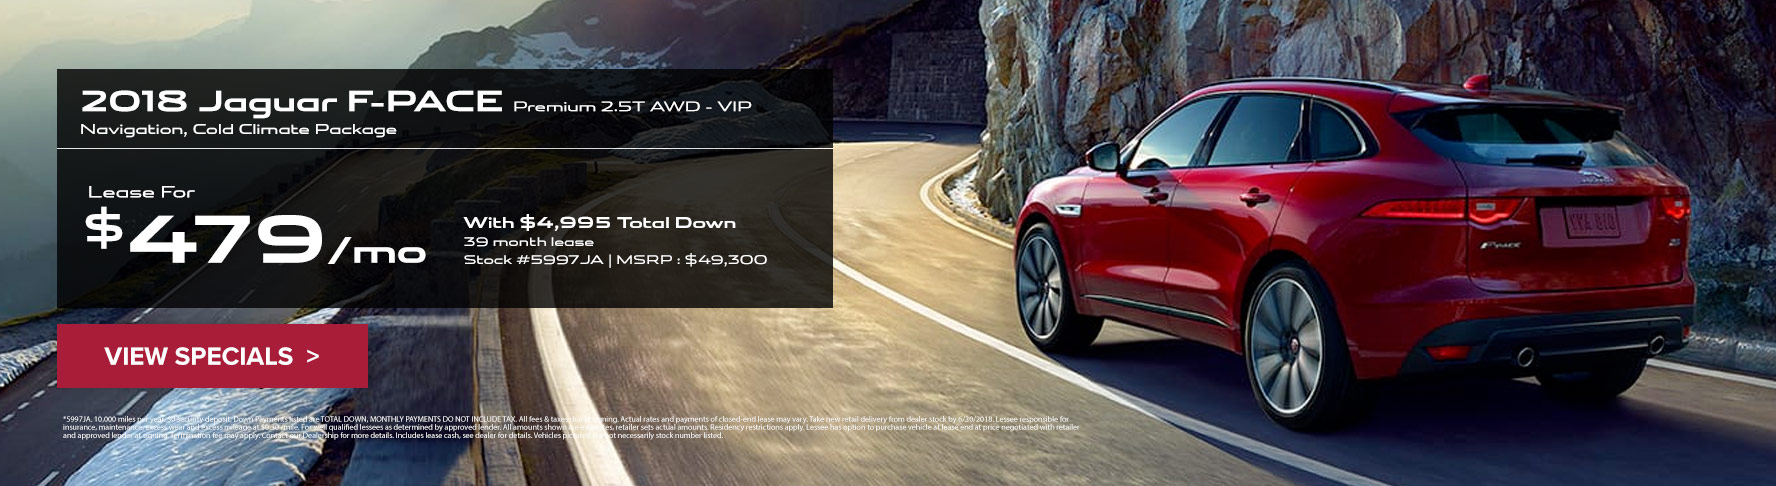 near grove pace in premium pre owned me willow auto dealer dealers awd pennsylvania jaguar certified f luxury